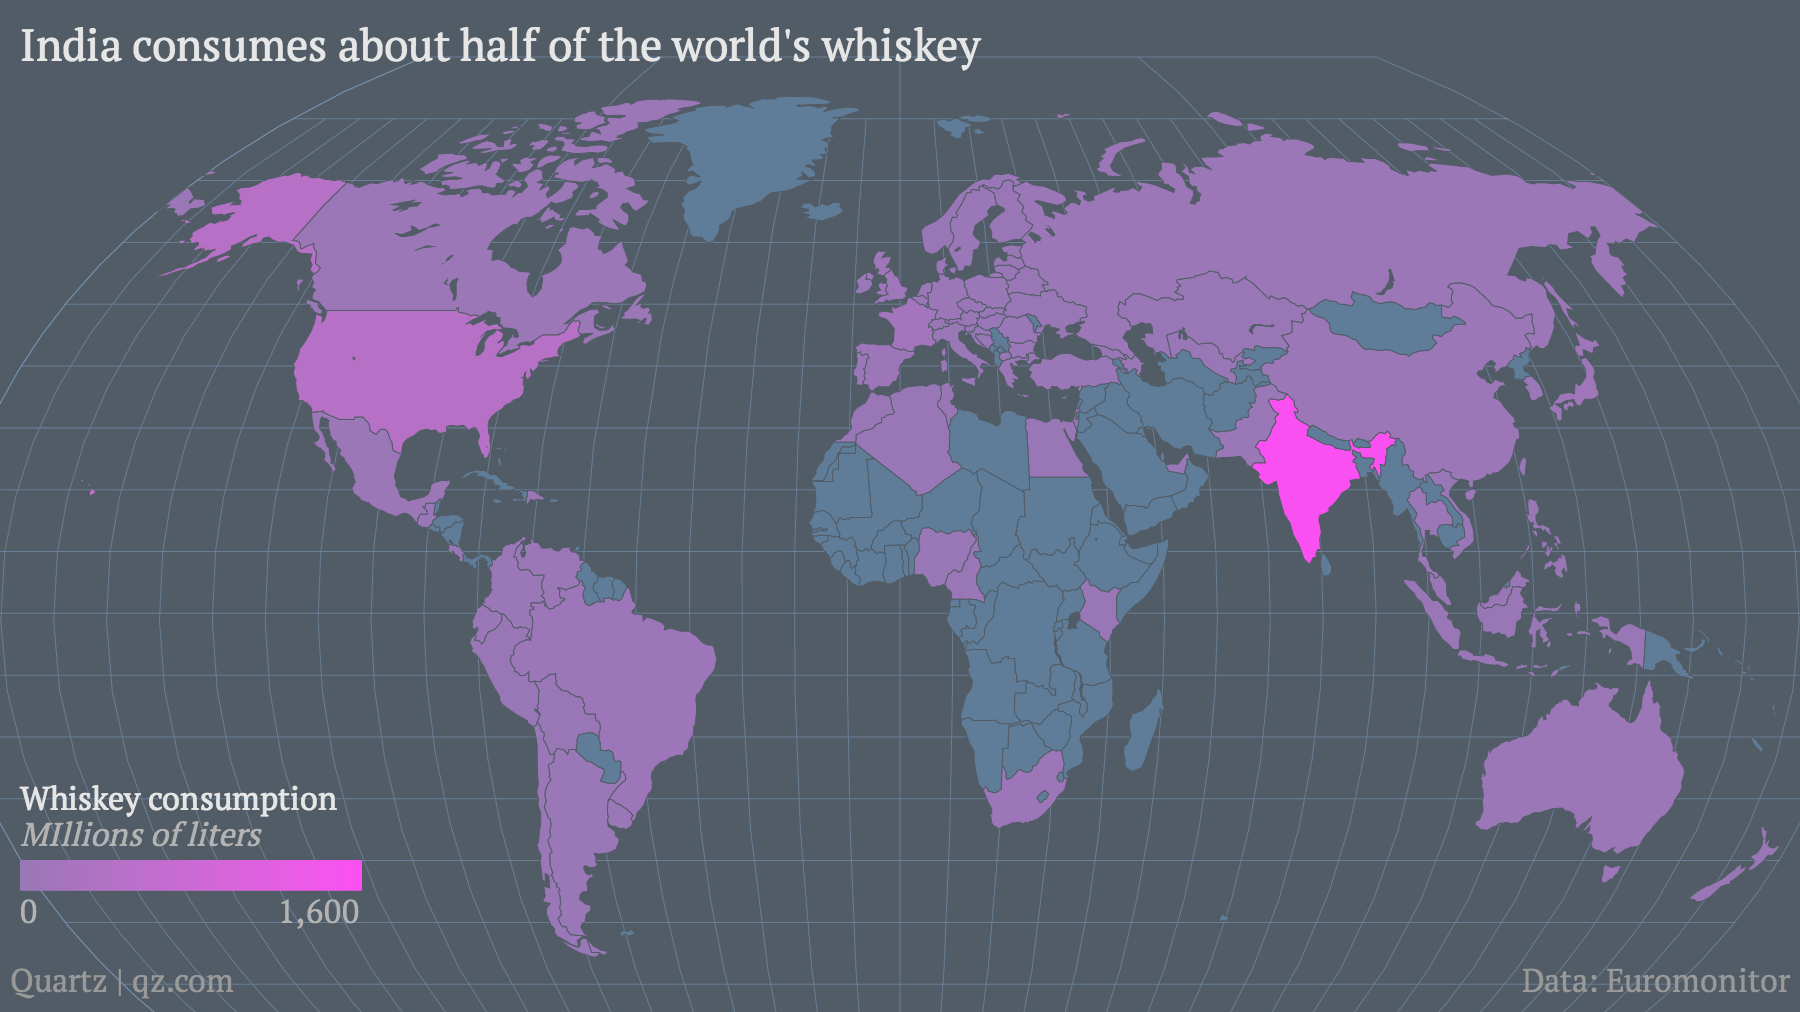 India-consumes-about-half-of-the-world-s-whiskey_mapbuilder (2)